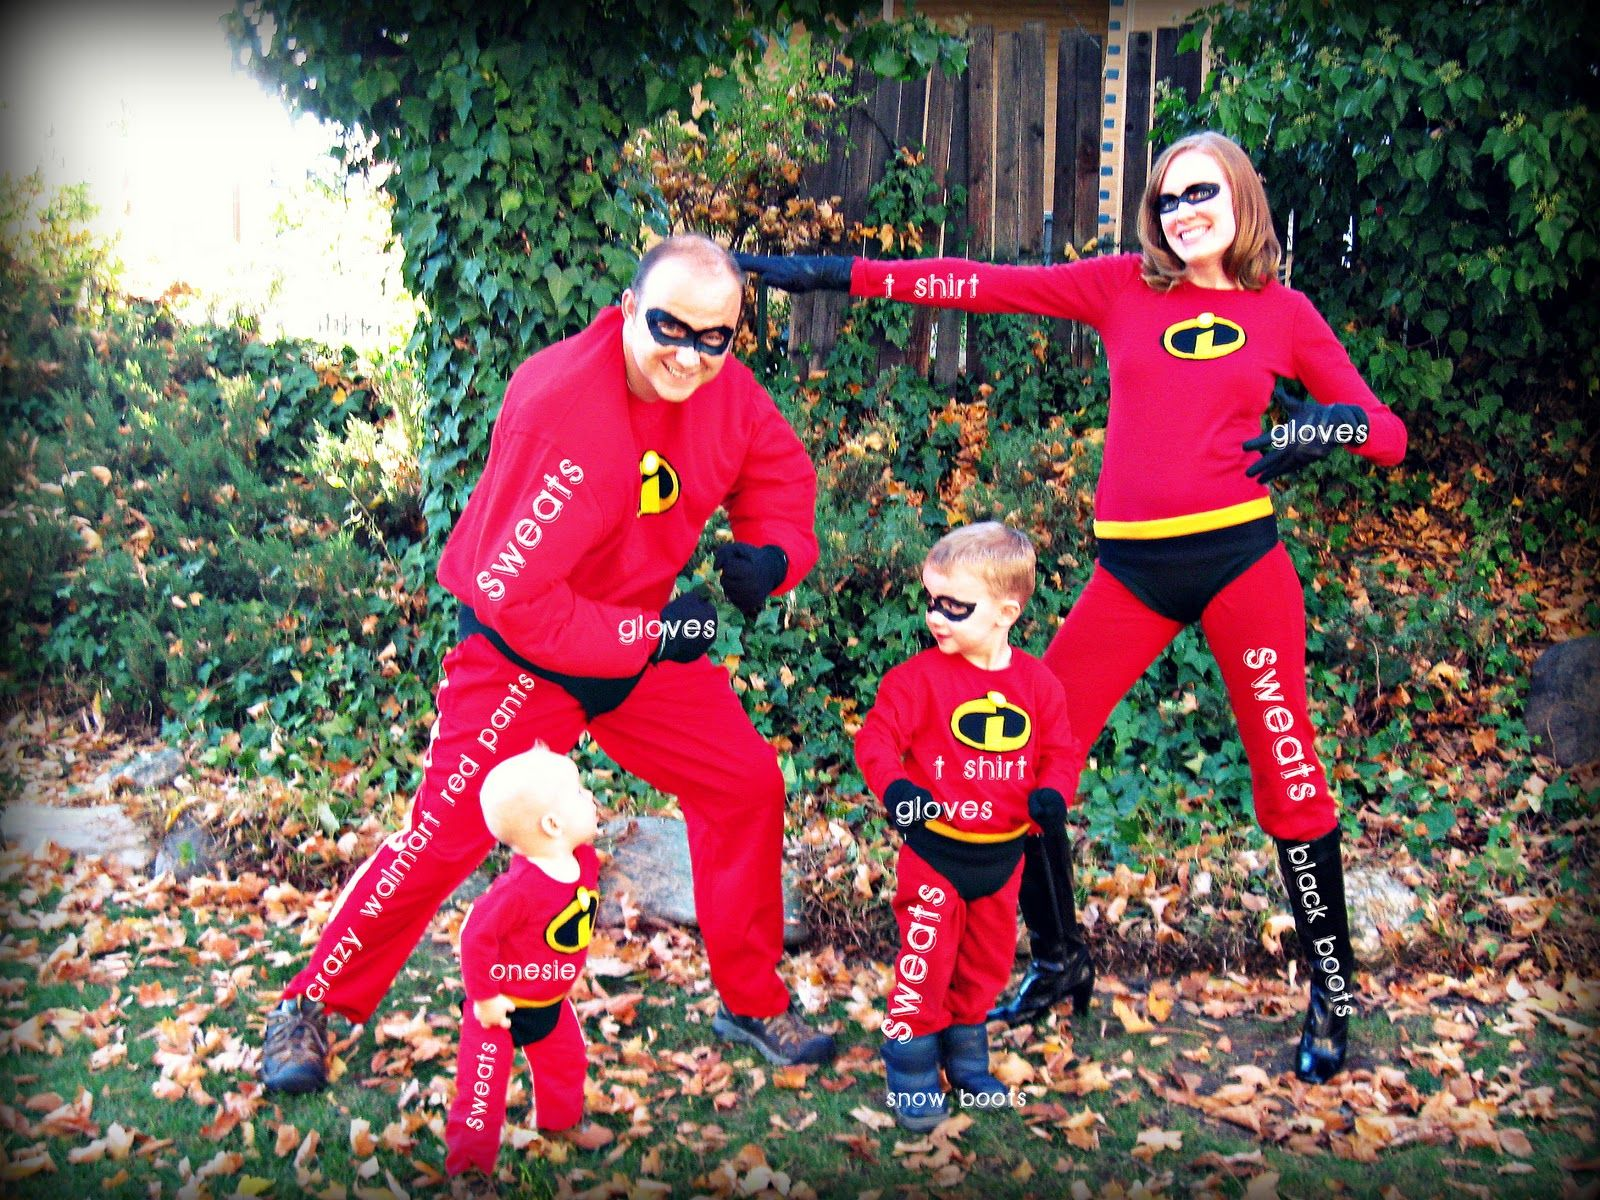 graphic regarding Incredibles Logo Printable referred to as the incredibles emblem printable Homemade Costumes: Do it yourself